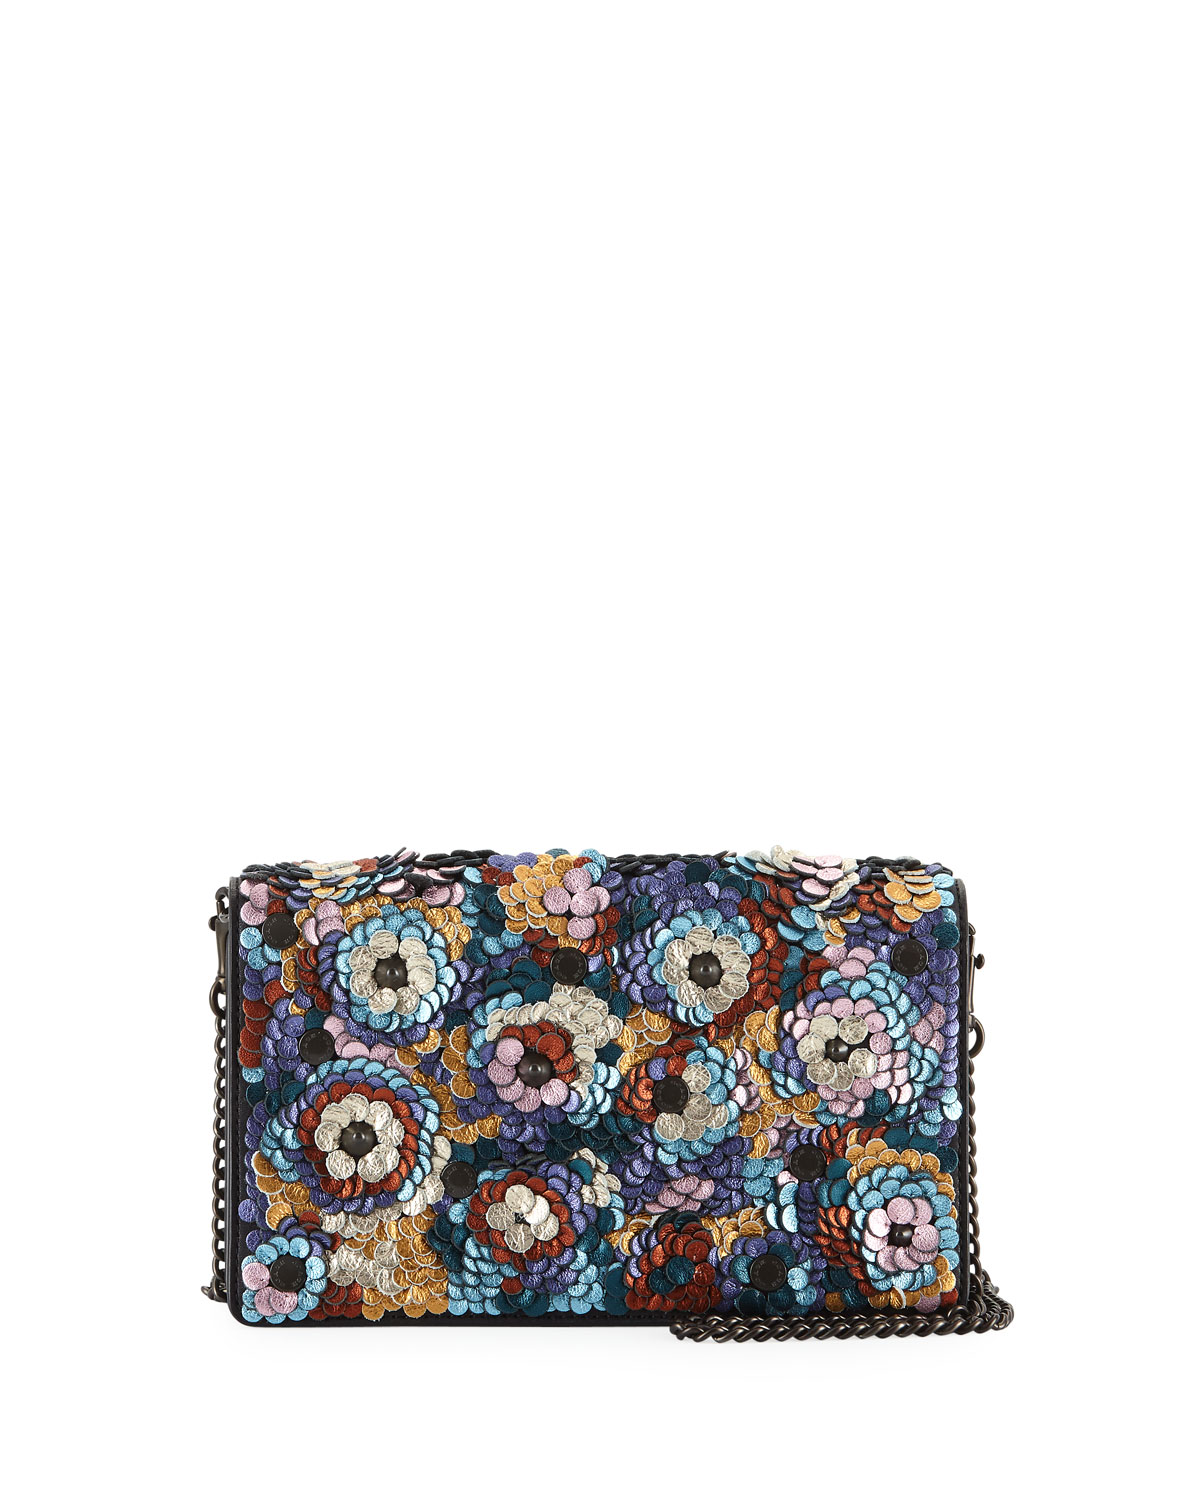 Leather Sequined Fold-Over Chain Clutch Bag in Multi Pattern